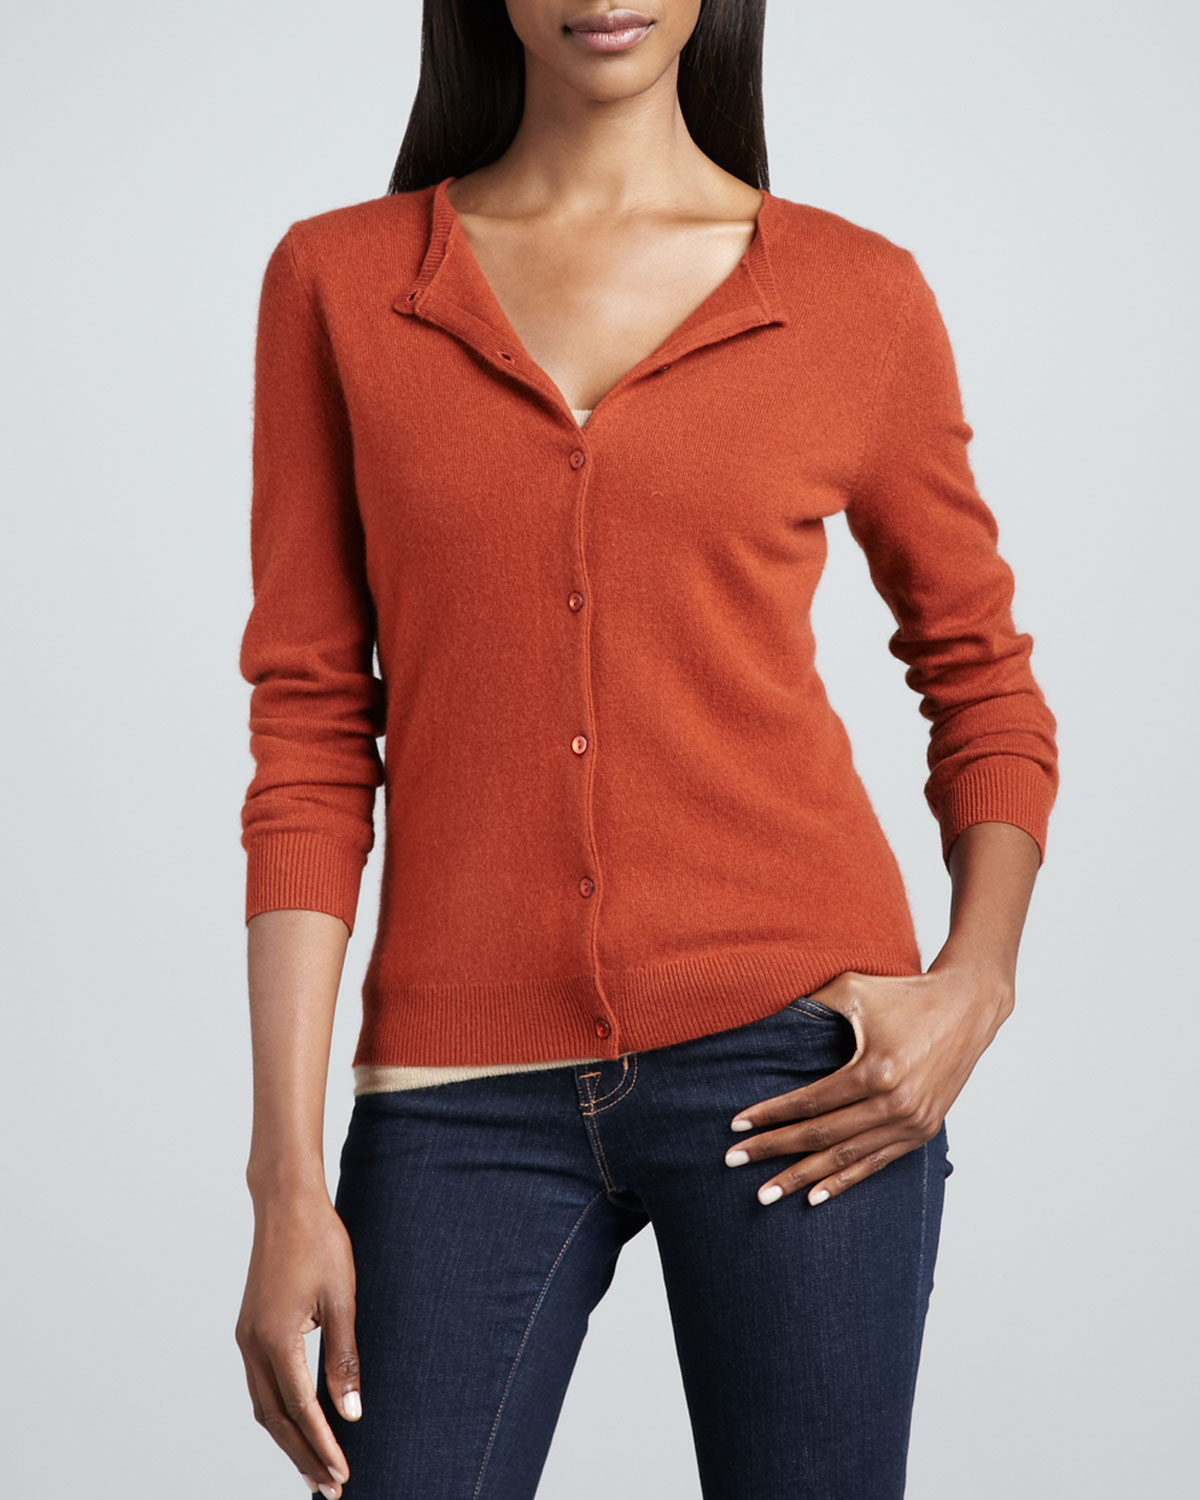 Neiman marcus Cashmere Cropped Cardigan in Orange | Lyst